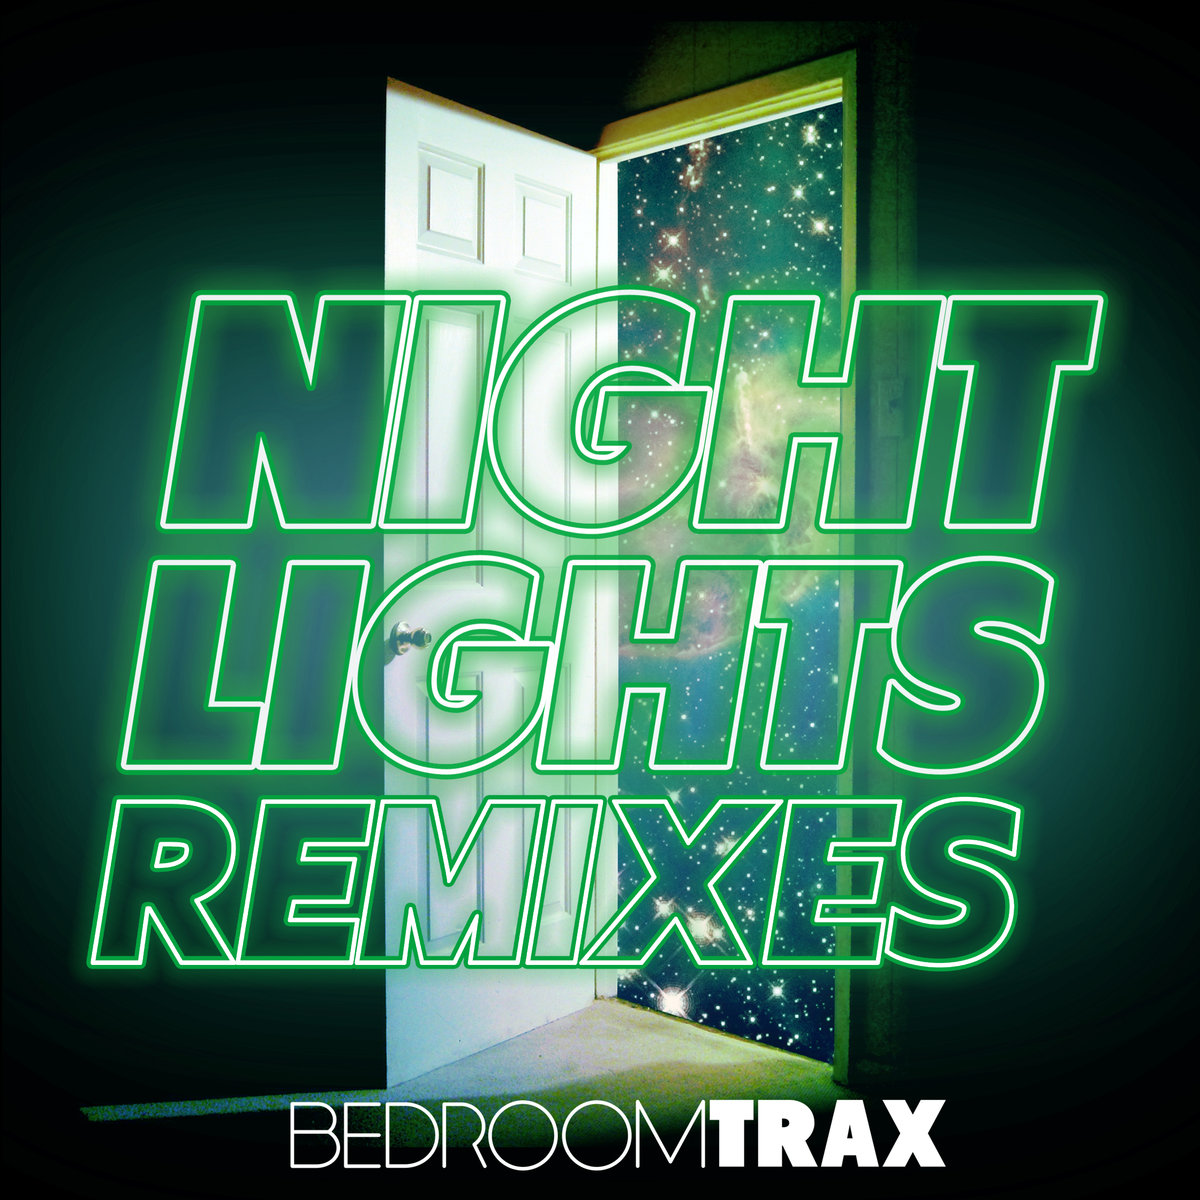 BedroomTrax - Homeboiz (VIP Remix) @ 'Night Lights Remixes' album (electronic, dubstep)